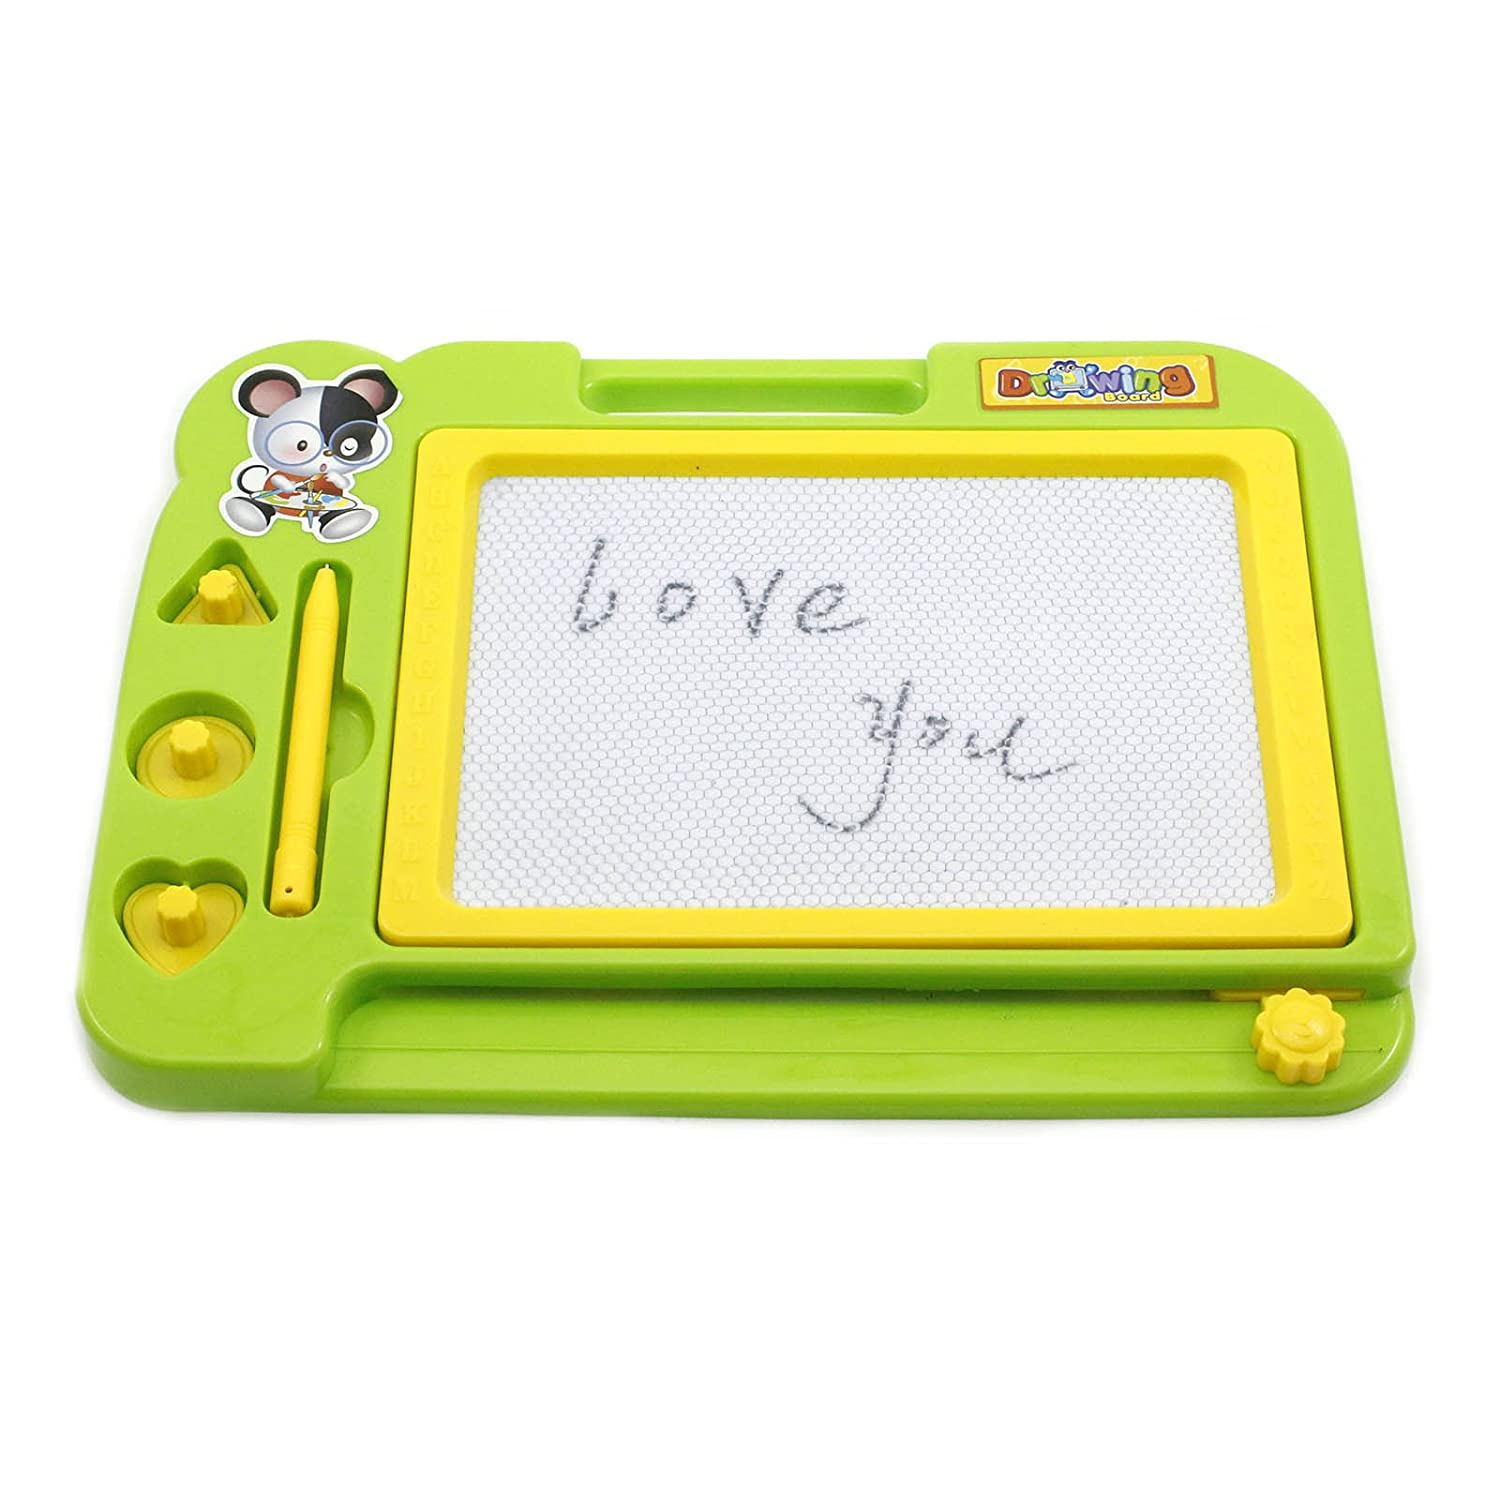 HuaYang Magnetic Educational Drawing Board Sketch Pad Doodle Writing Craft Art for Children Kids Random Color